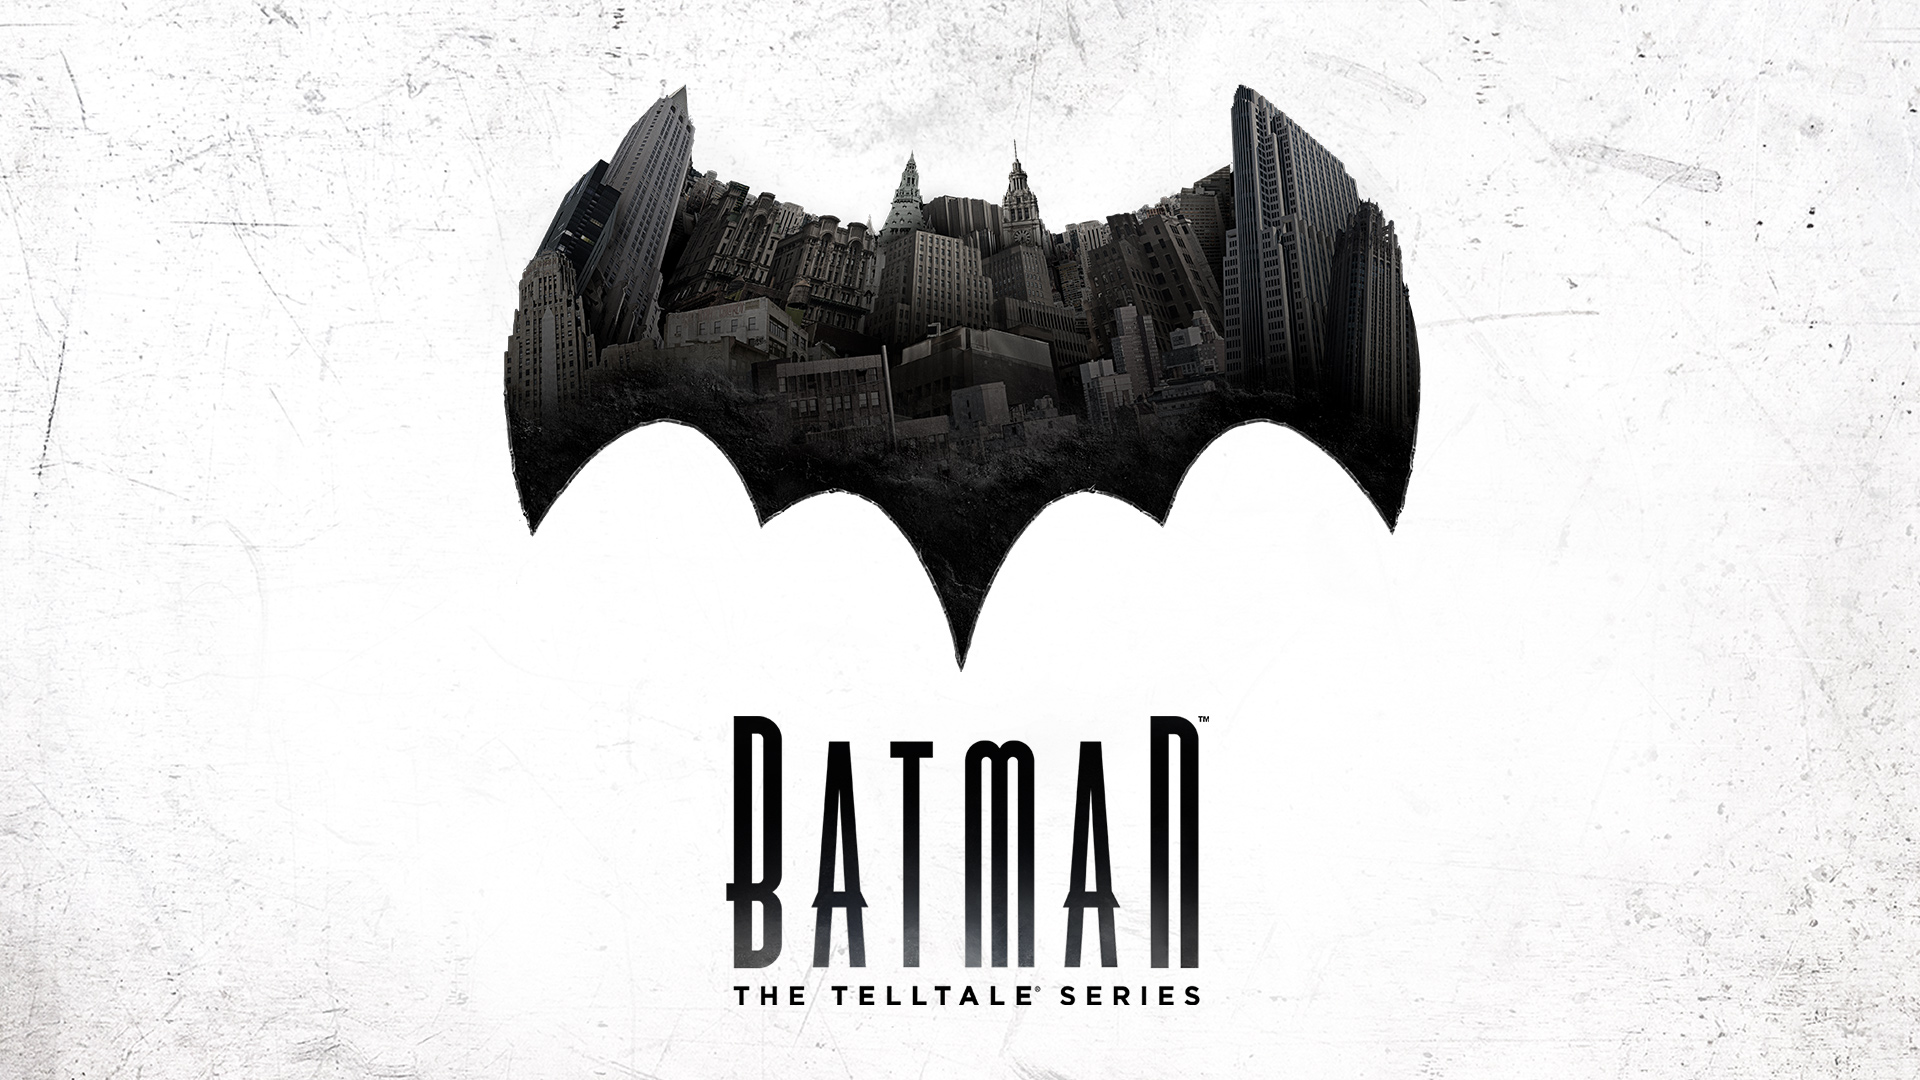 Batman – The Telltale Series erscheint am 17. November für Nintendo Switch